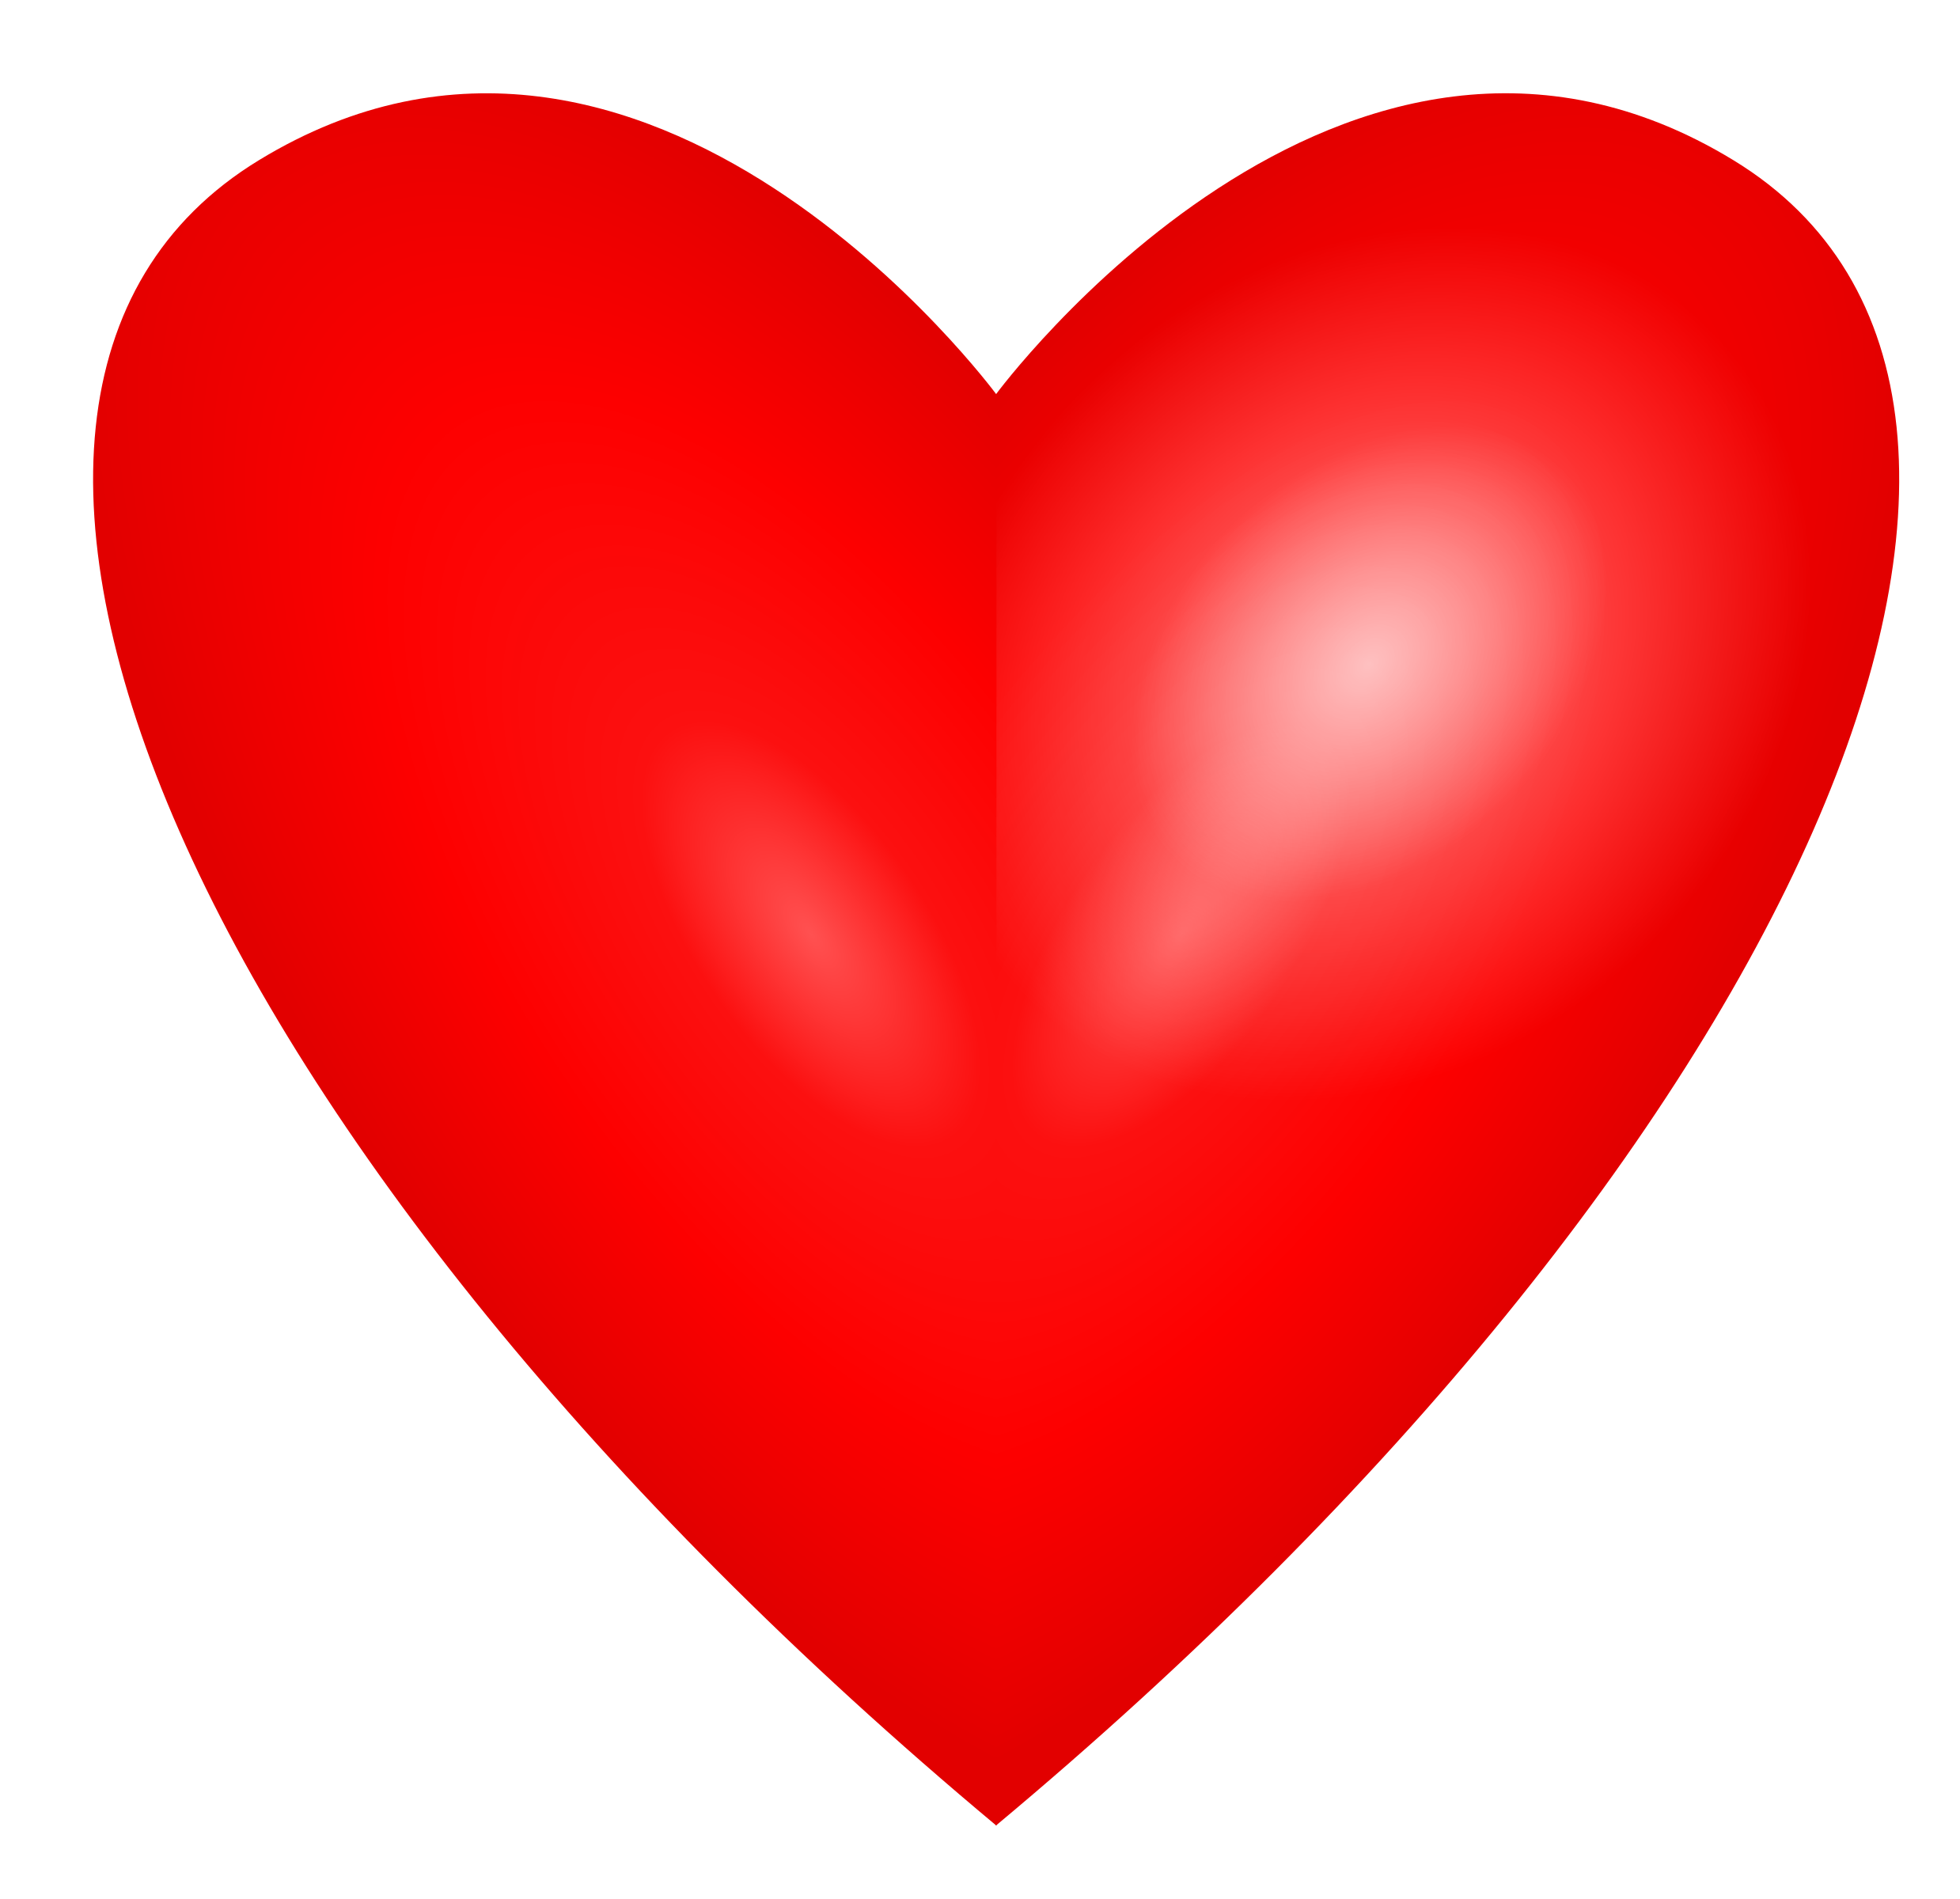 Love Heart Image   Free download on ClipArtMag